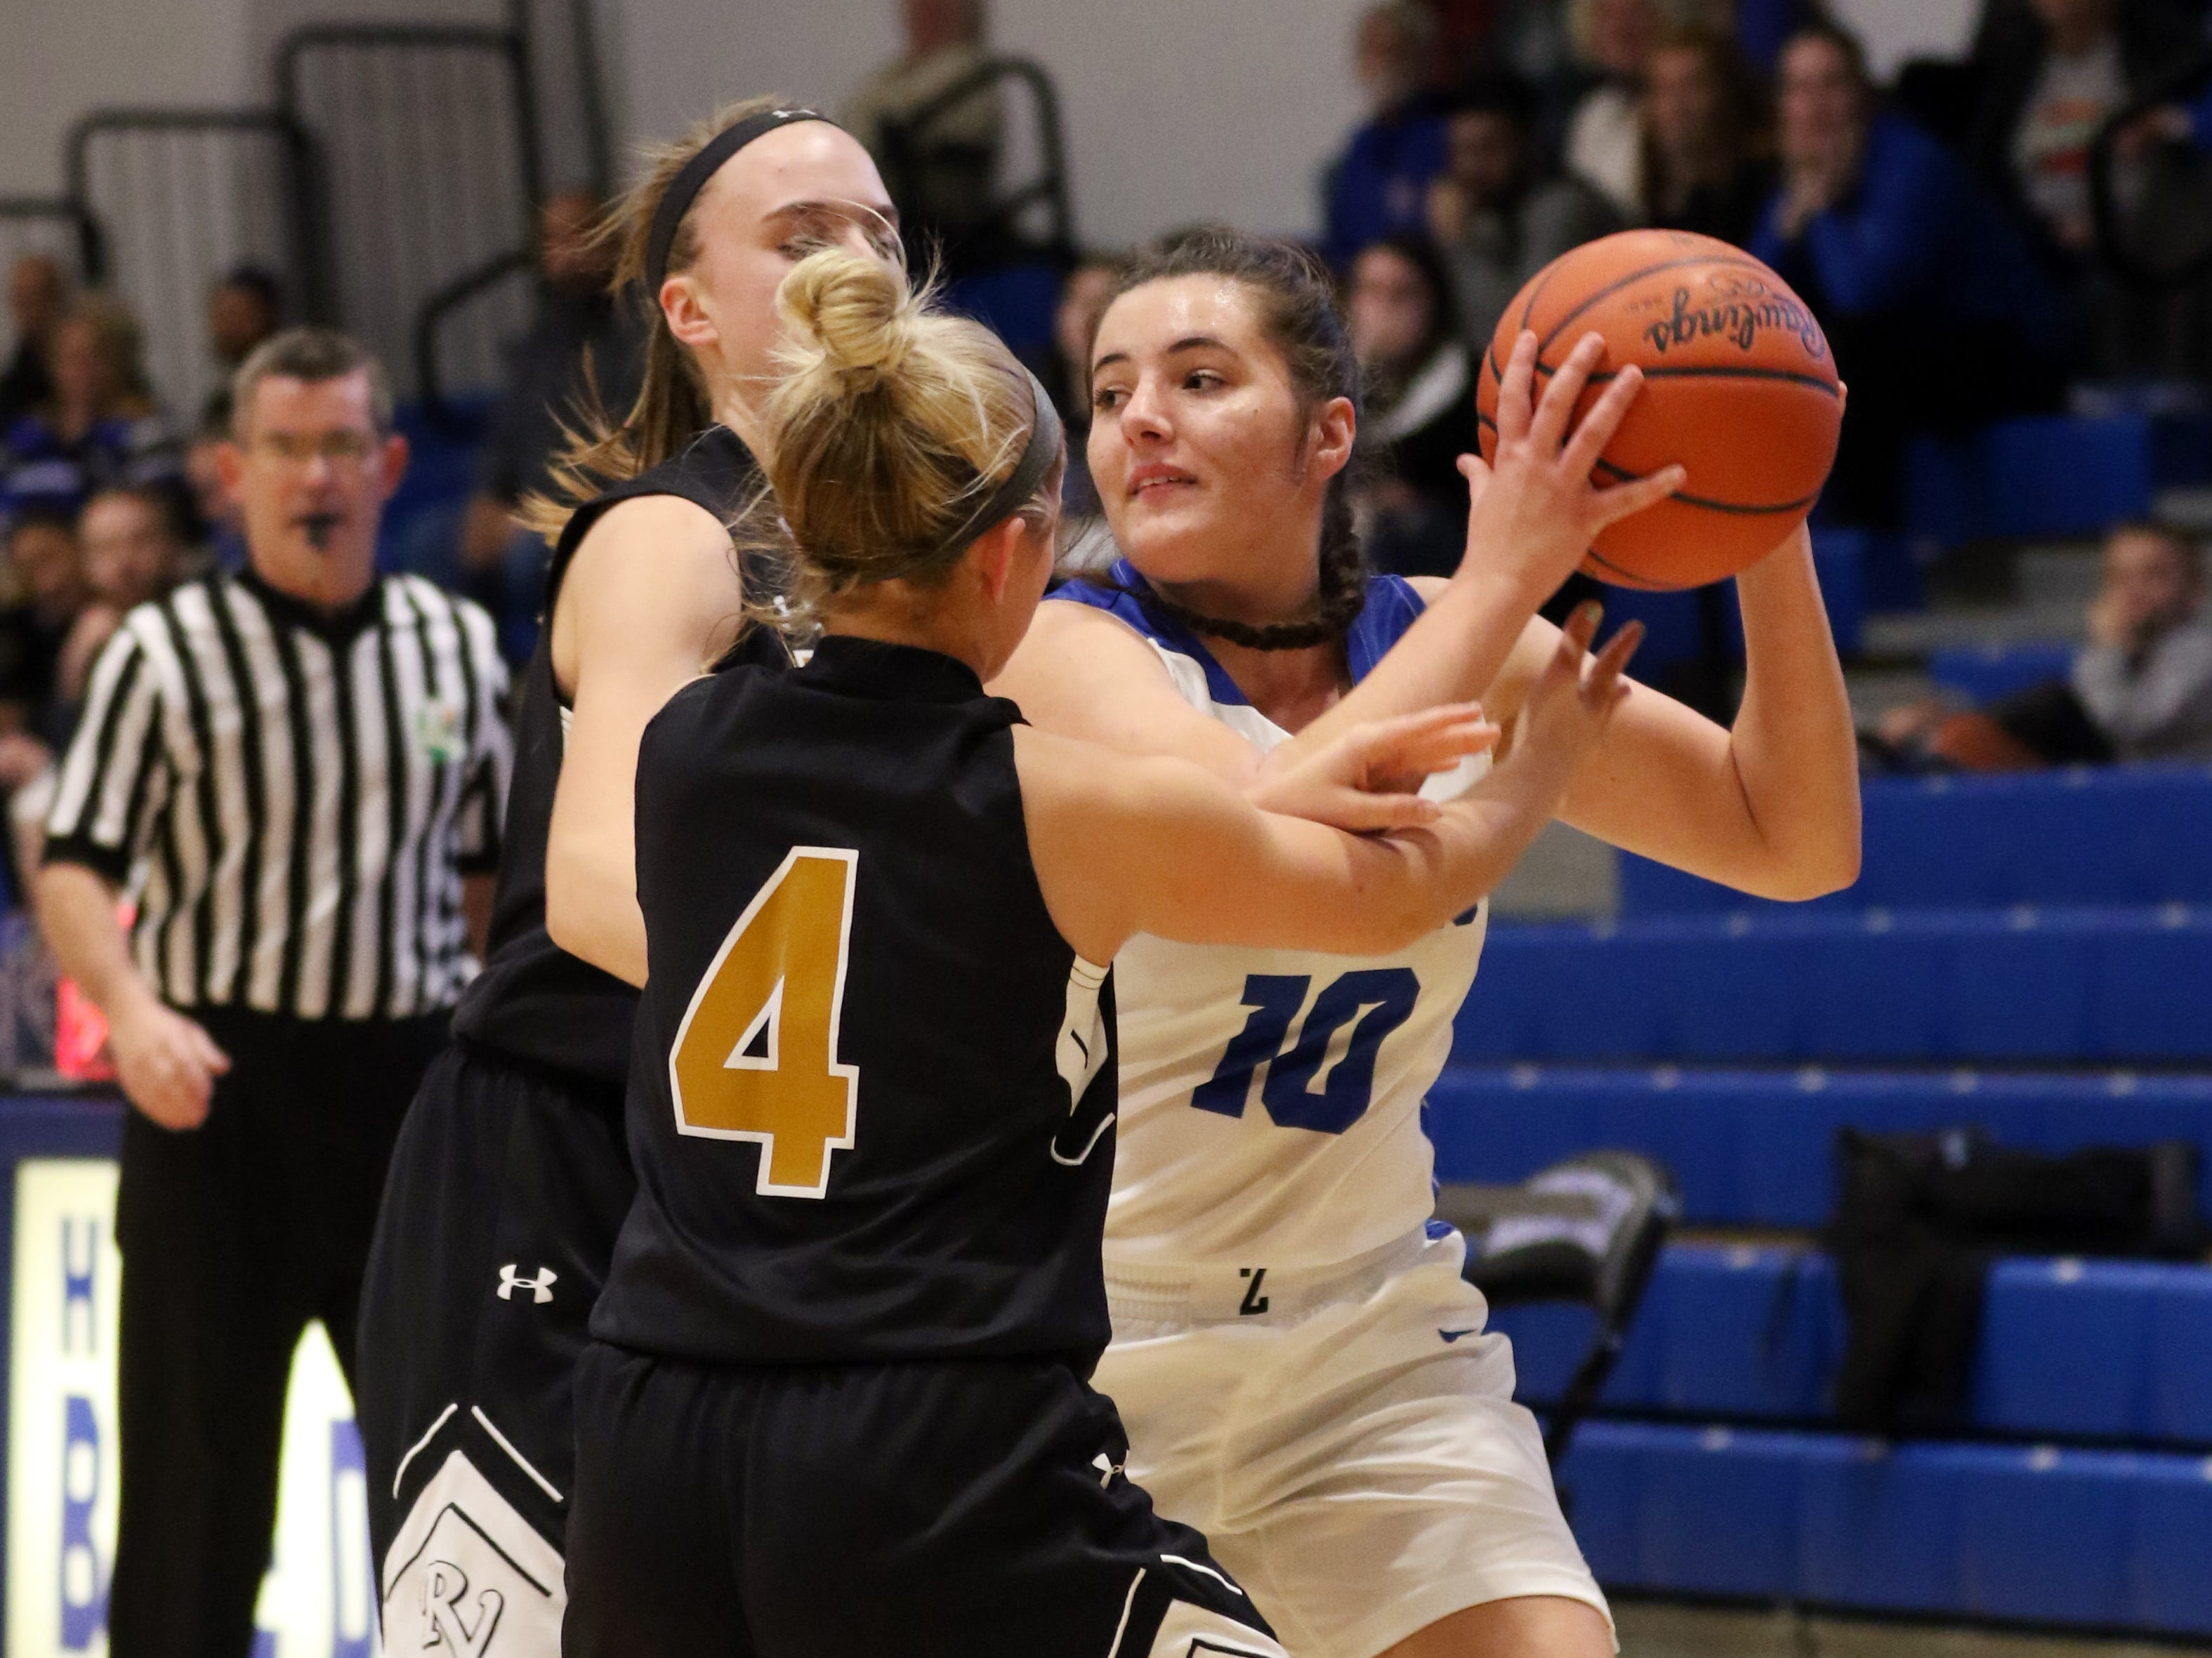 Zanesville's Aayla Mayle finds herself in defensive pressure from a pair of River View defenders, Lexi Fry (4) and Kelsey Hartsock.